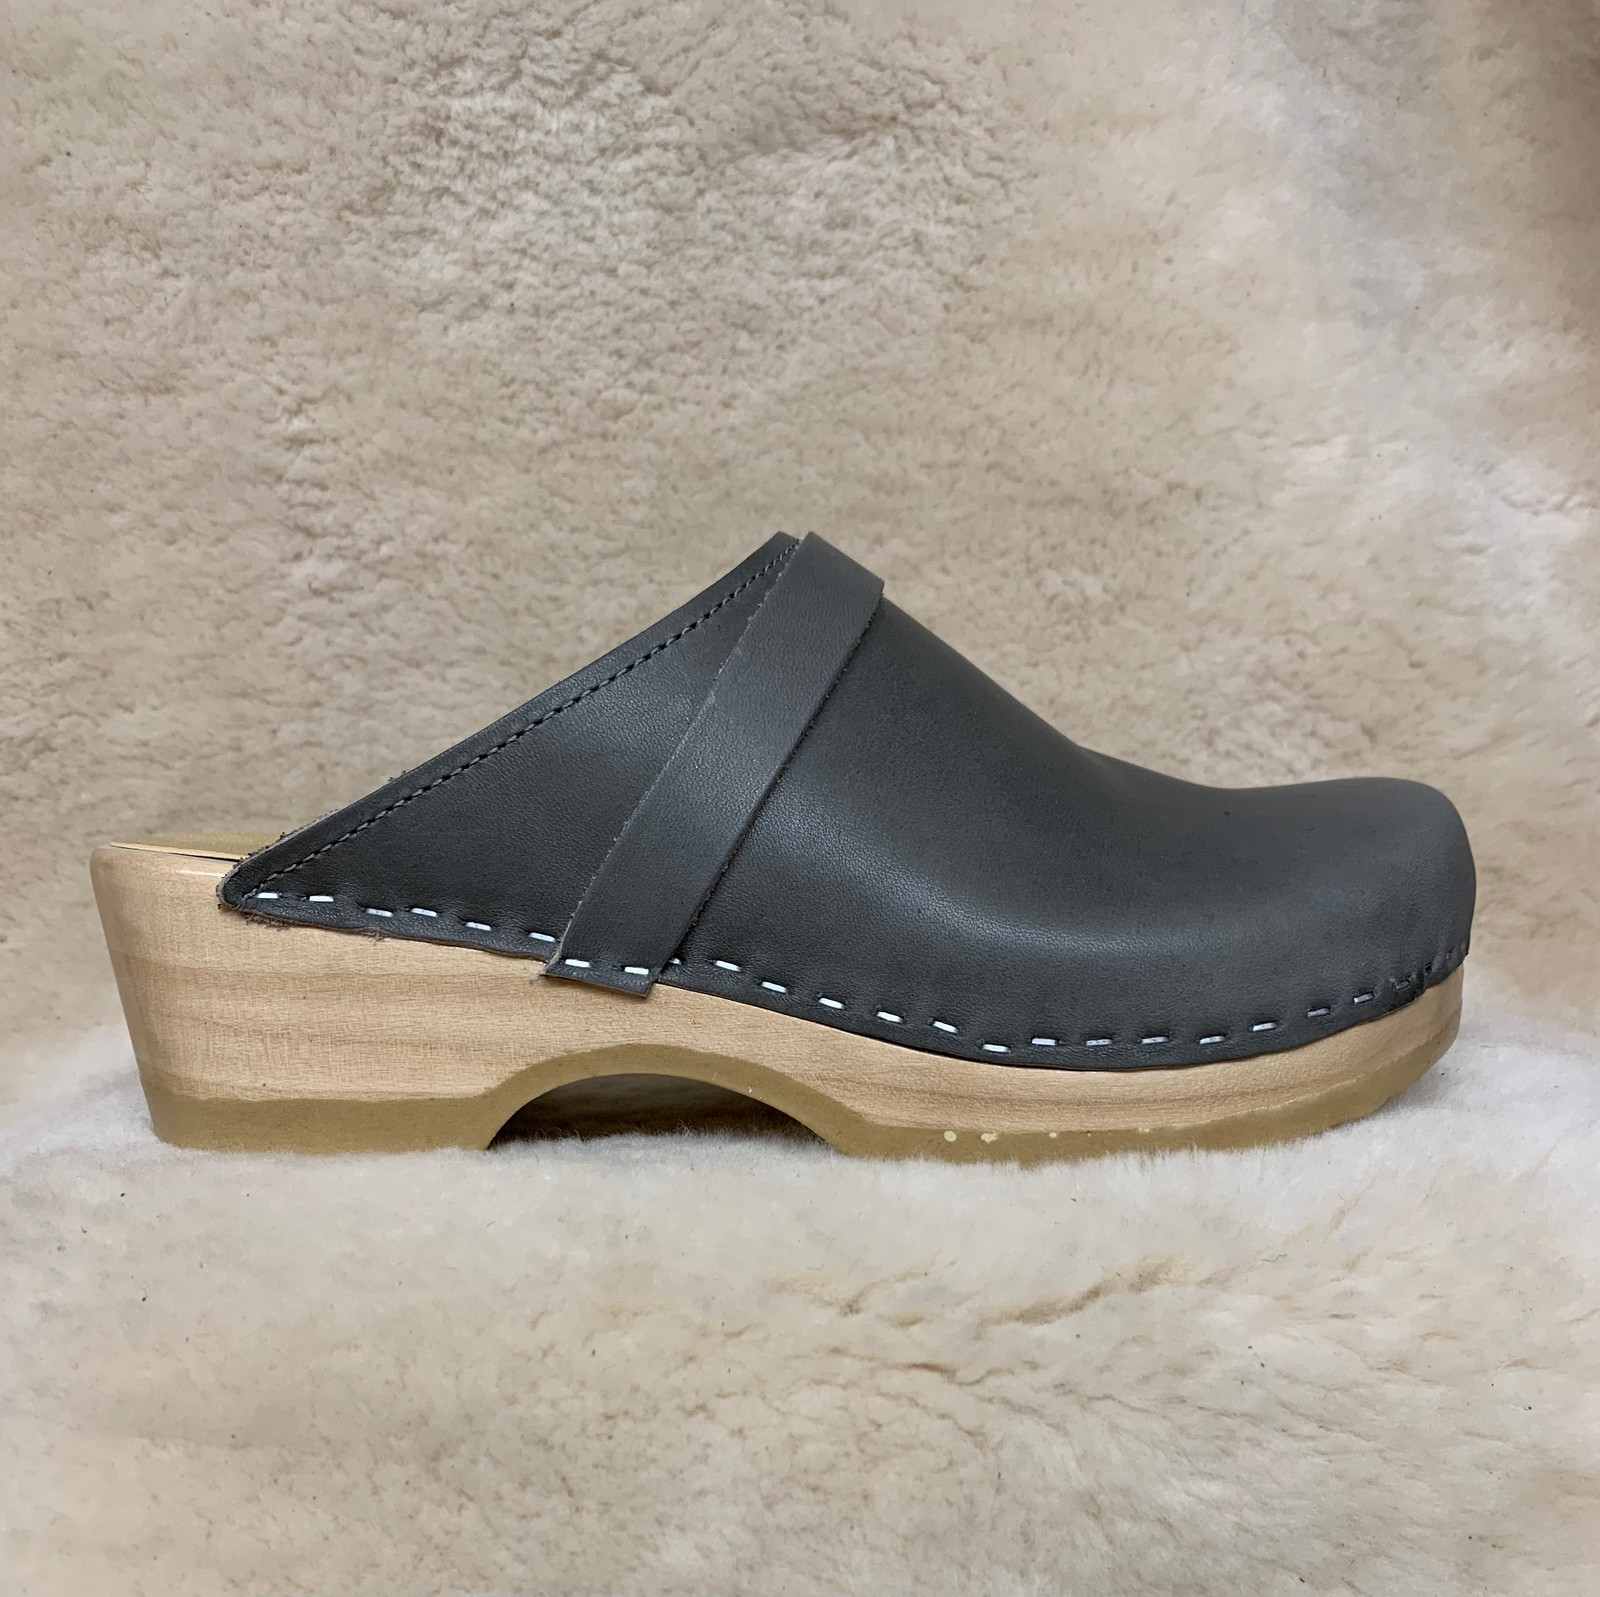 Slate Gray  - Clogs with Strap